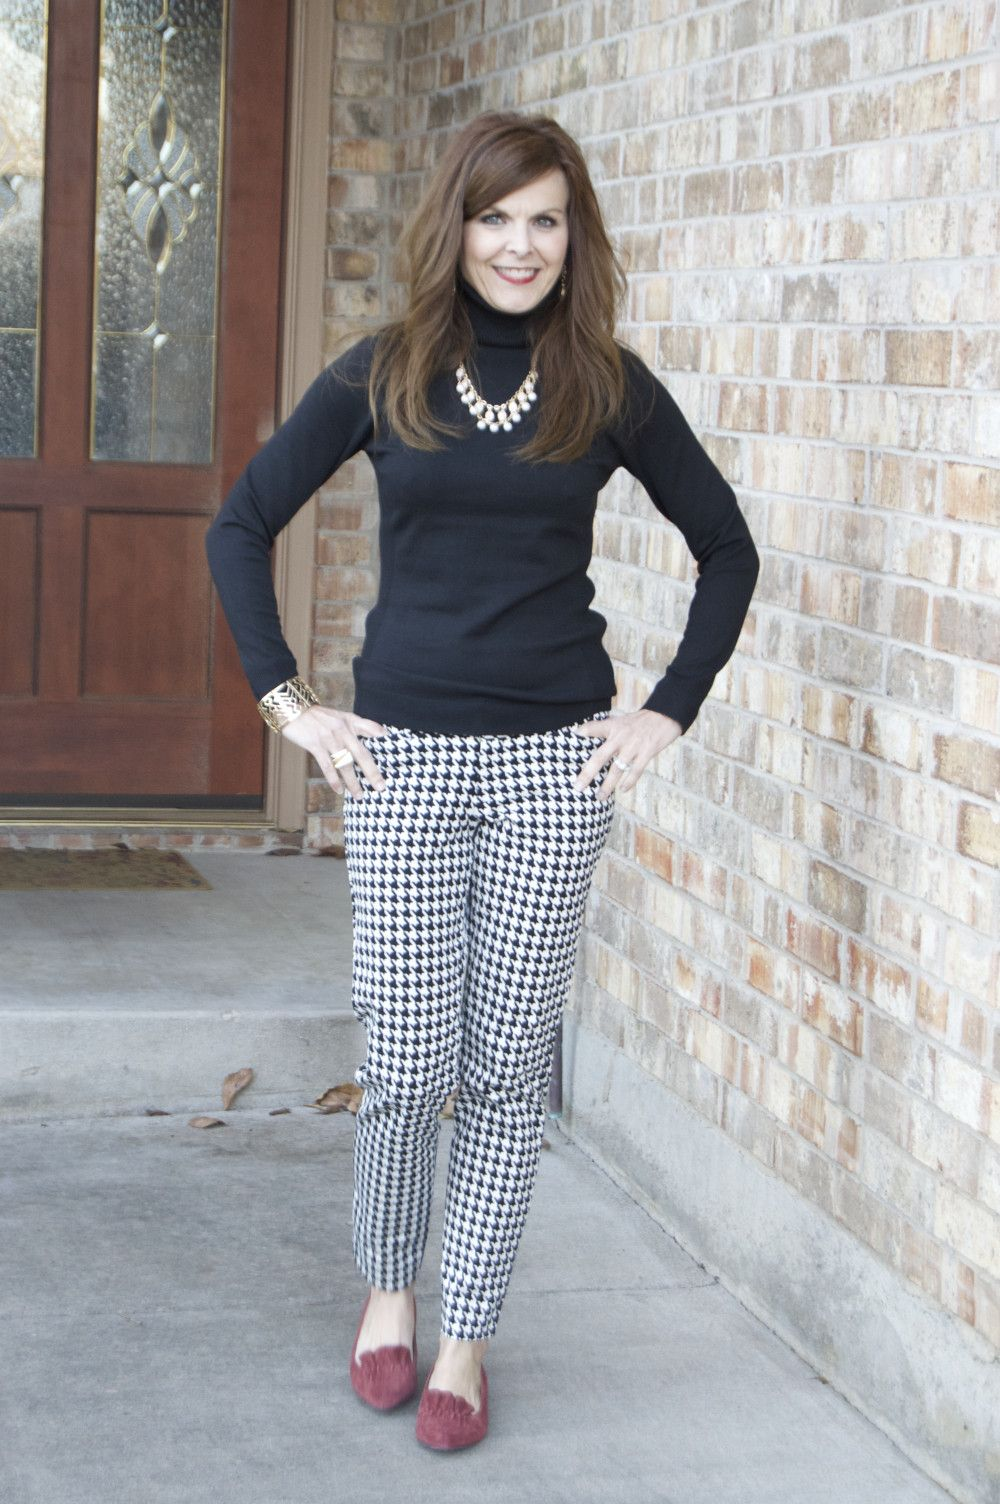 dccfa94b6e Houndstooth Pixie Pants (Old Navy) + Black Turtleneck (The Limited) + Shoes  (DSW)